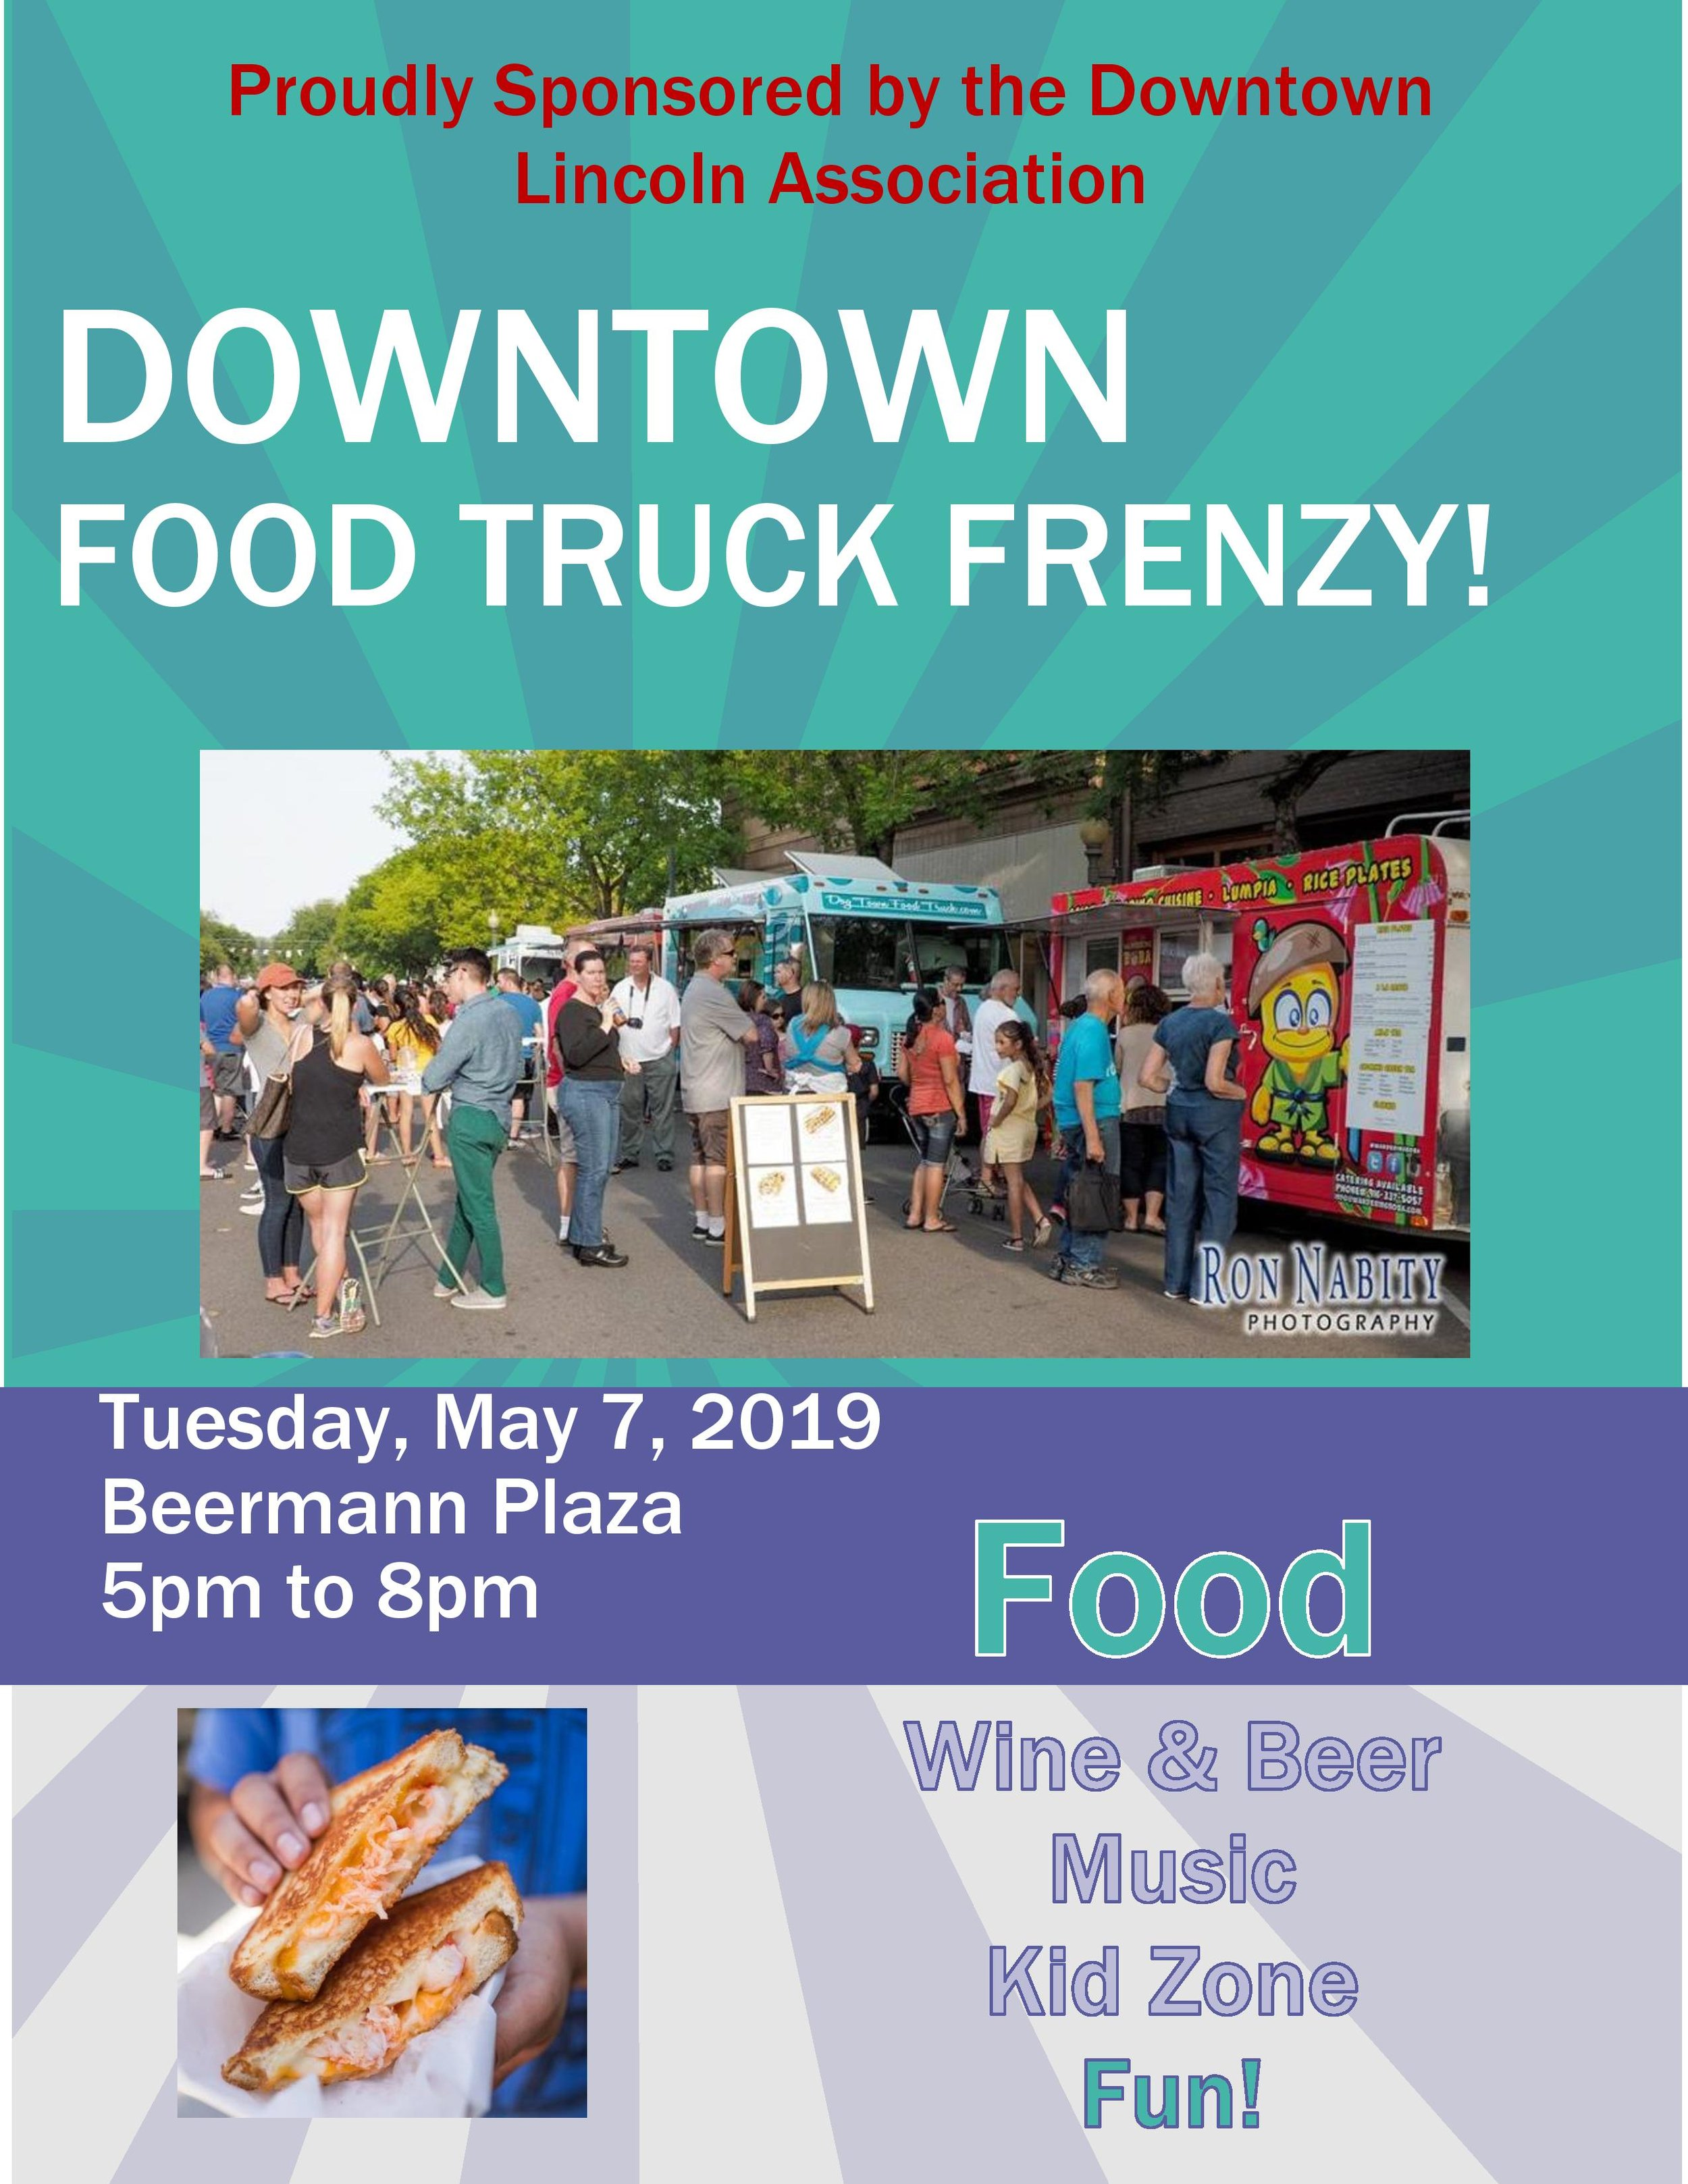 Food Truck Frenzy May 7, 2019-jpeg.jpg